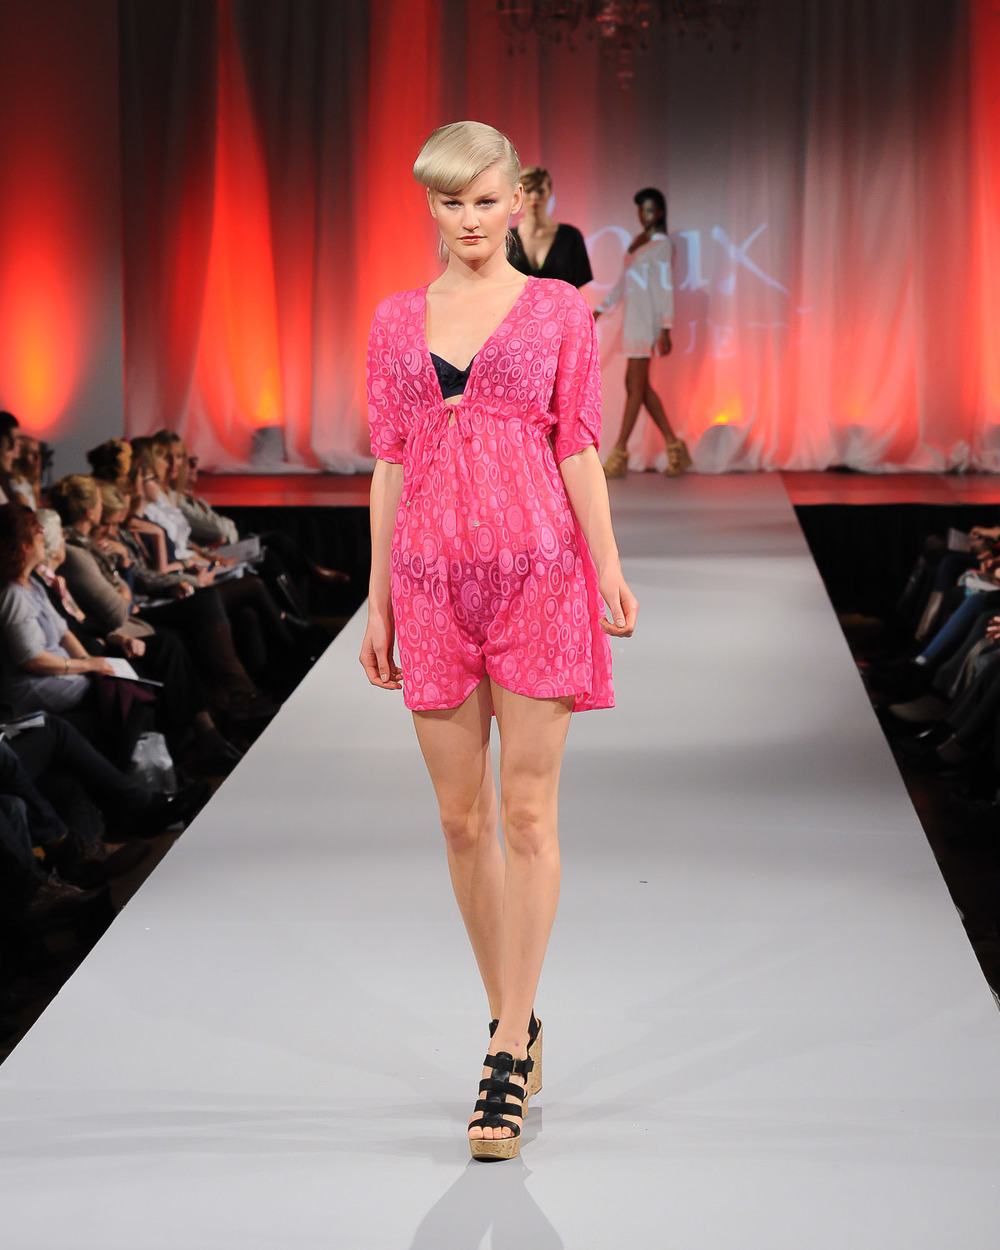 bath-in-fashion-spring-summer-6.jpg